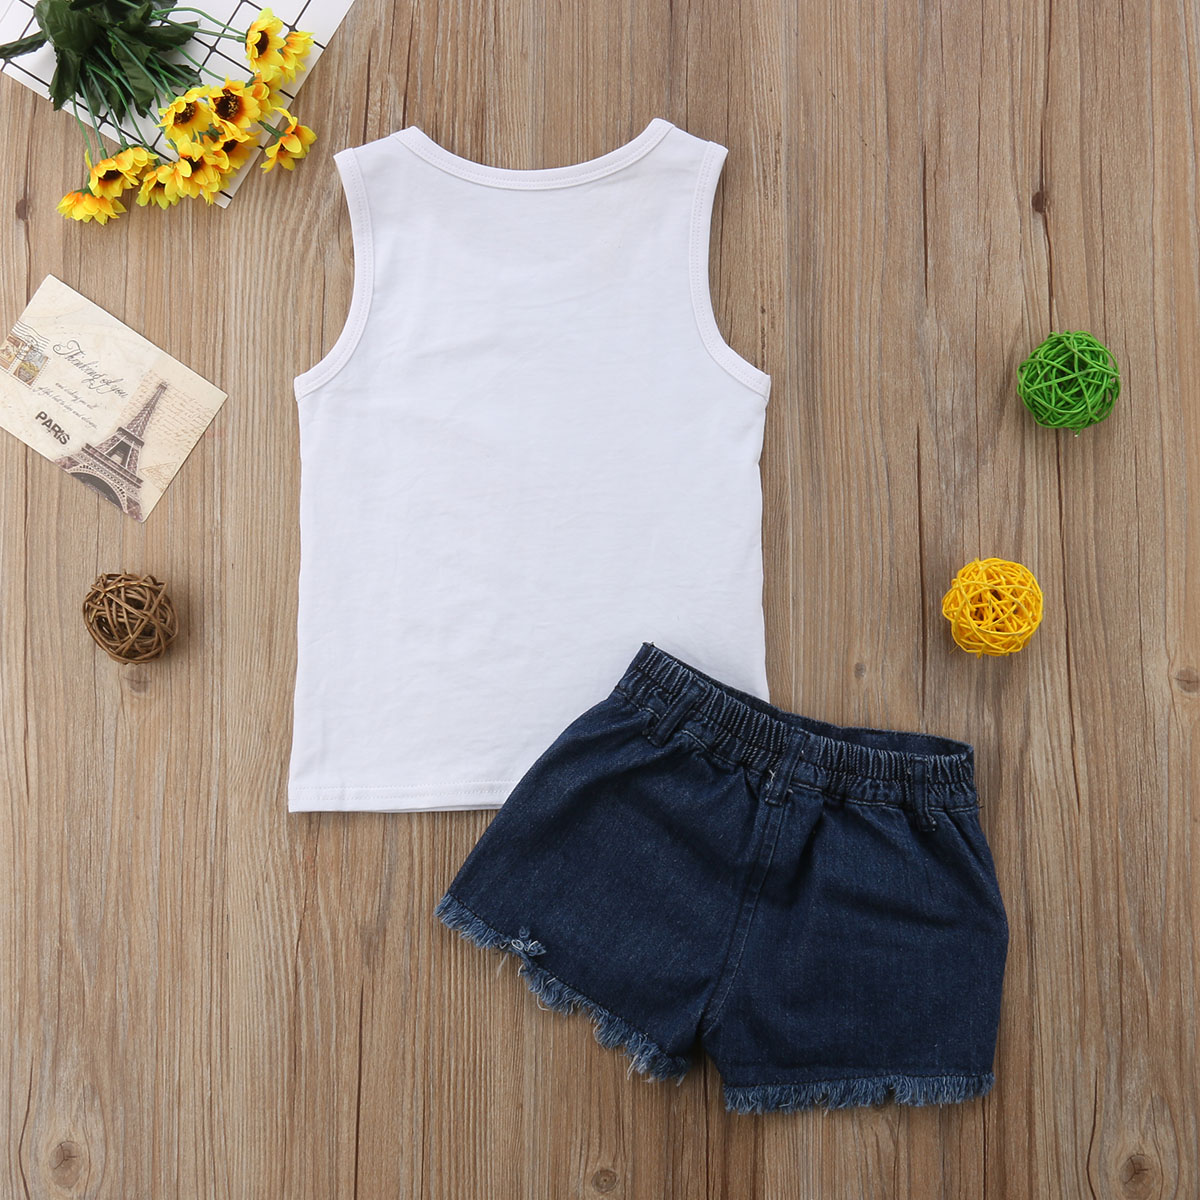 Clothing Sets Kids Baby Boy Clothes Sets Summer 2pcs Streetwear Sleeveless Hooded Vest Tops Striped Shorts 2pcs Boy Cotton Outfits 6m-4y Punctual Timing